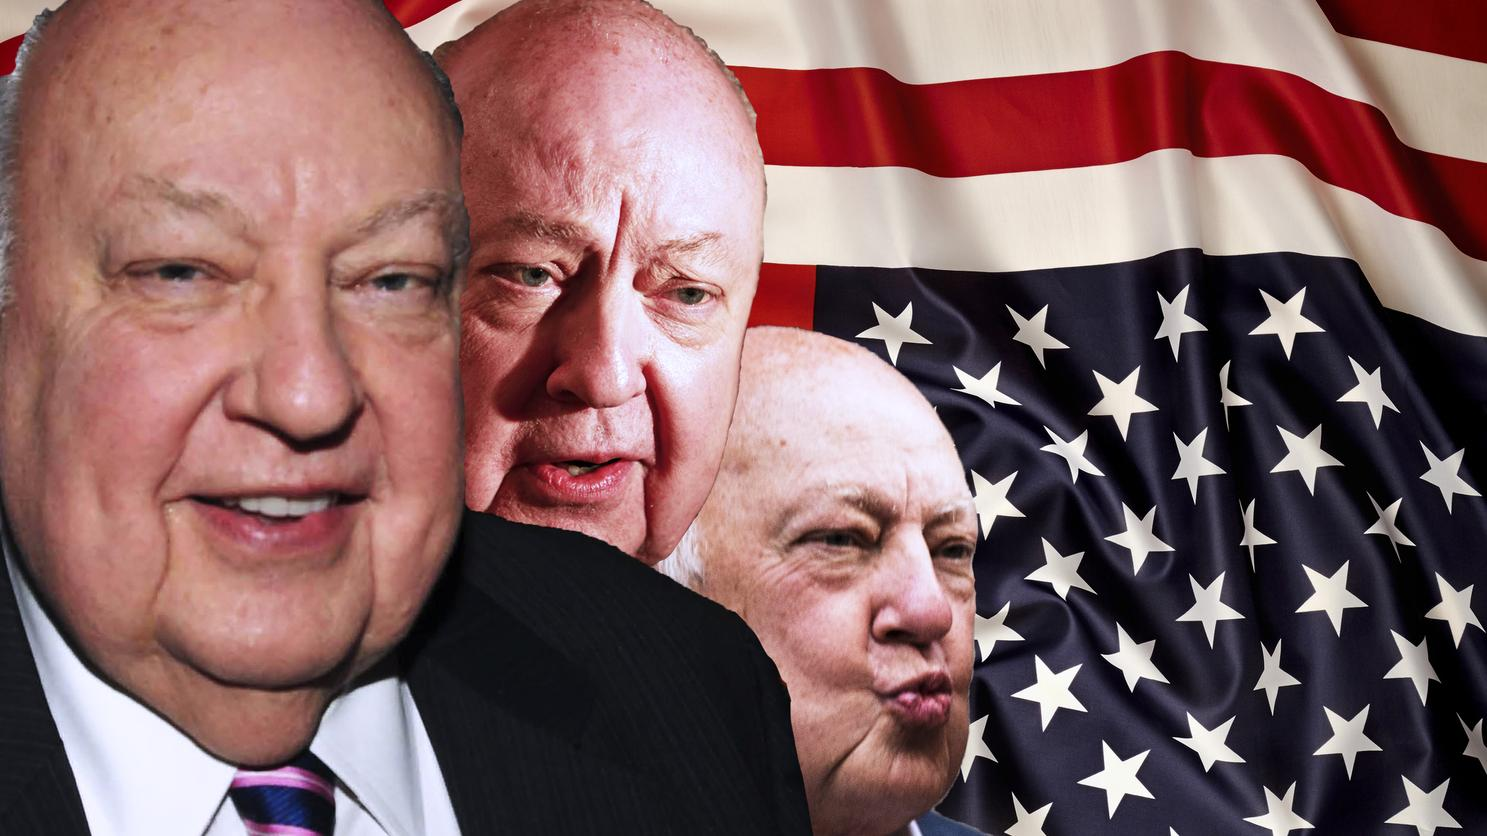 Roger Ailes will live forever: https://t.co/36Ifvccpjg https://t.co/cuk8EBQtl3